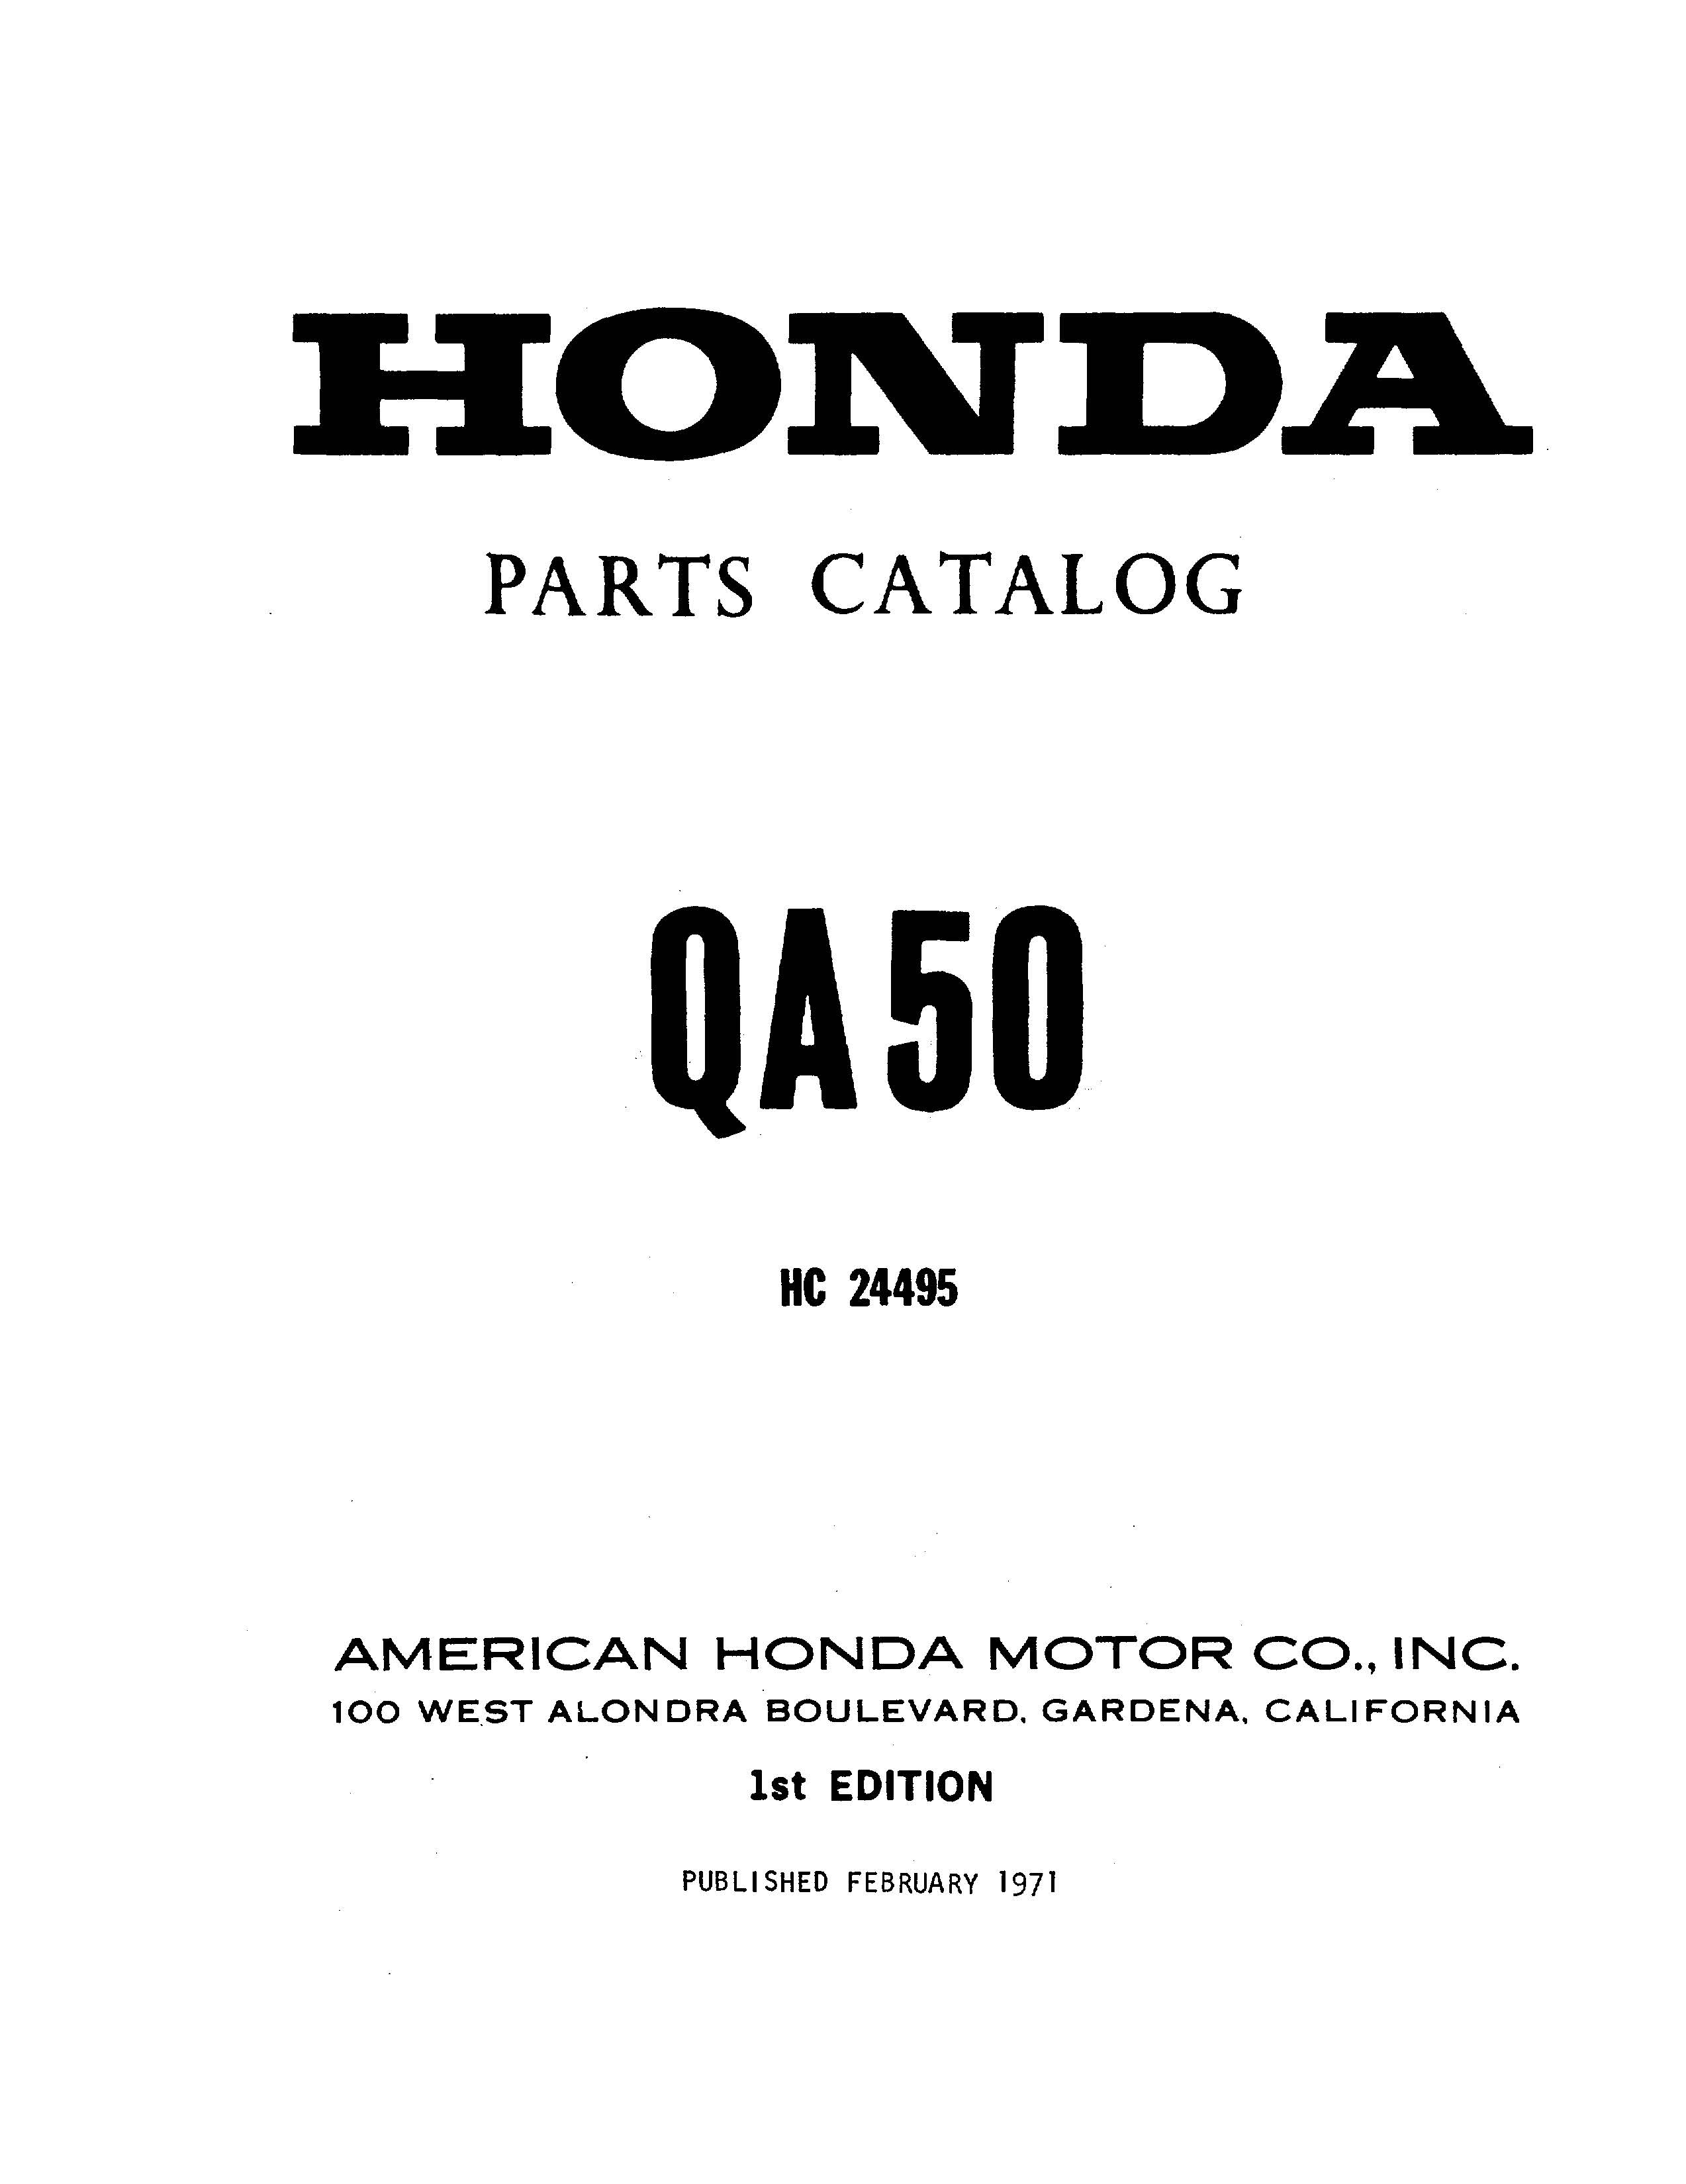 Parts list for Honda QA50 (1971)